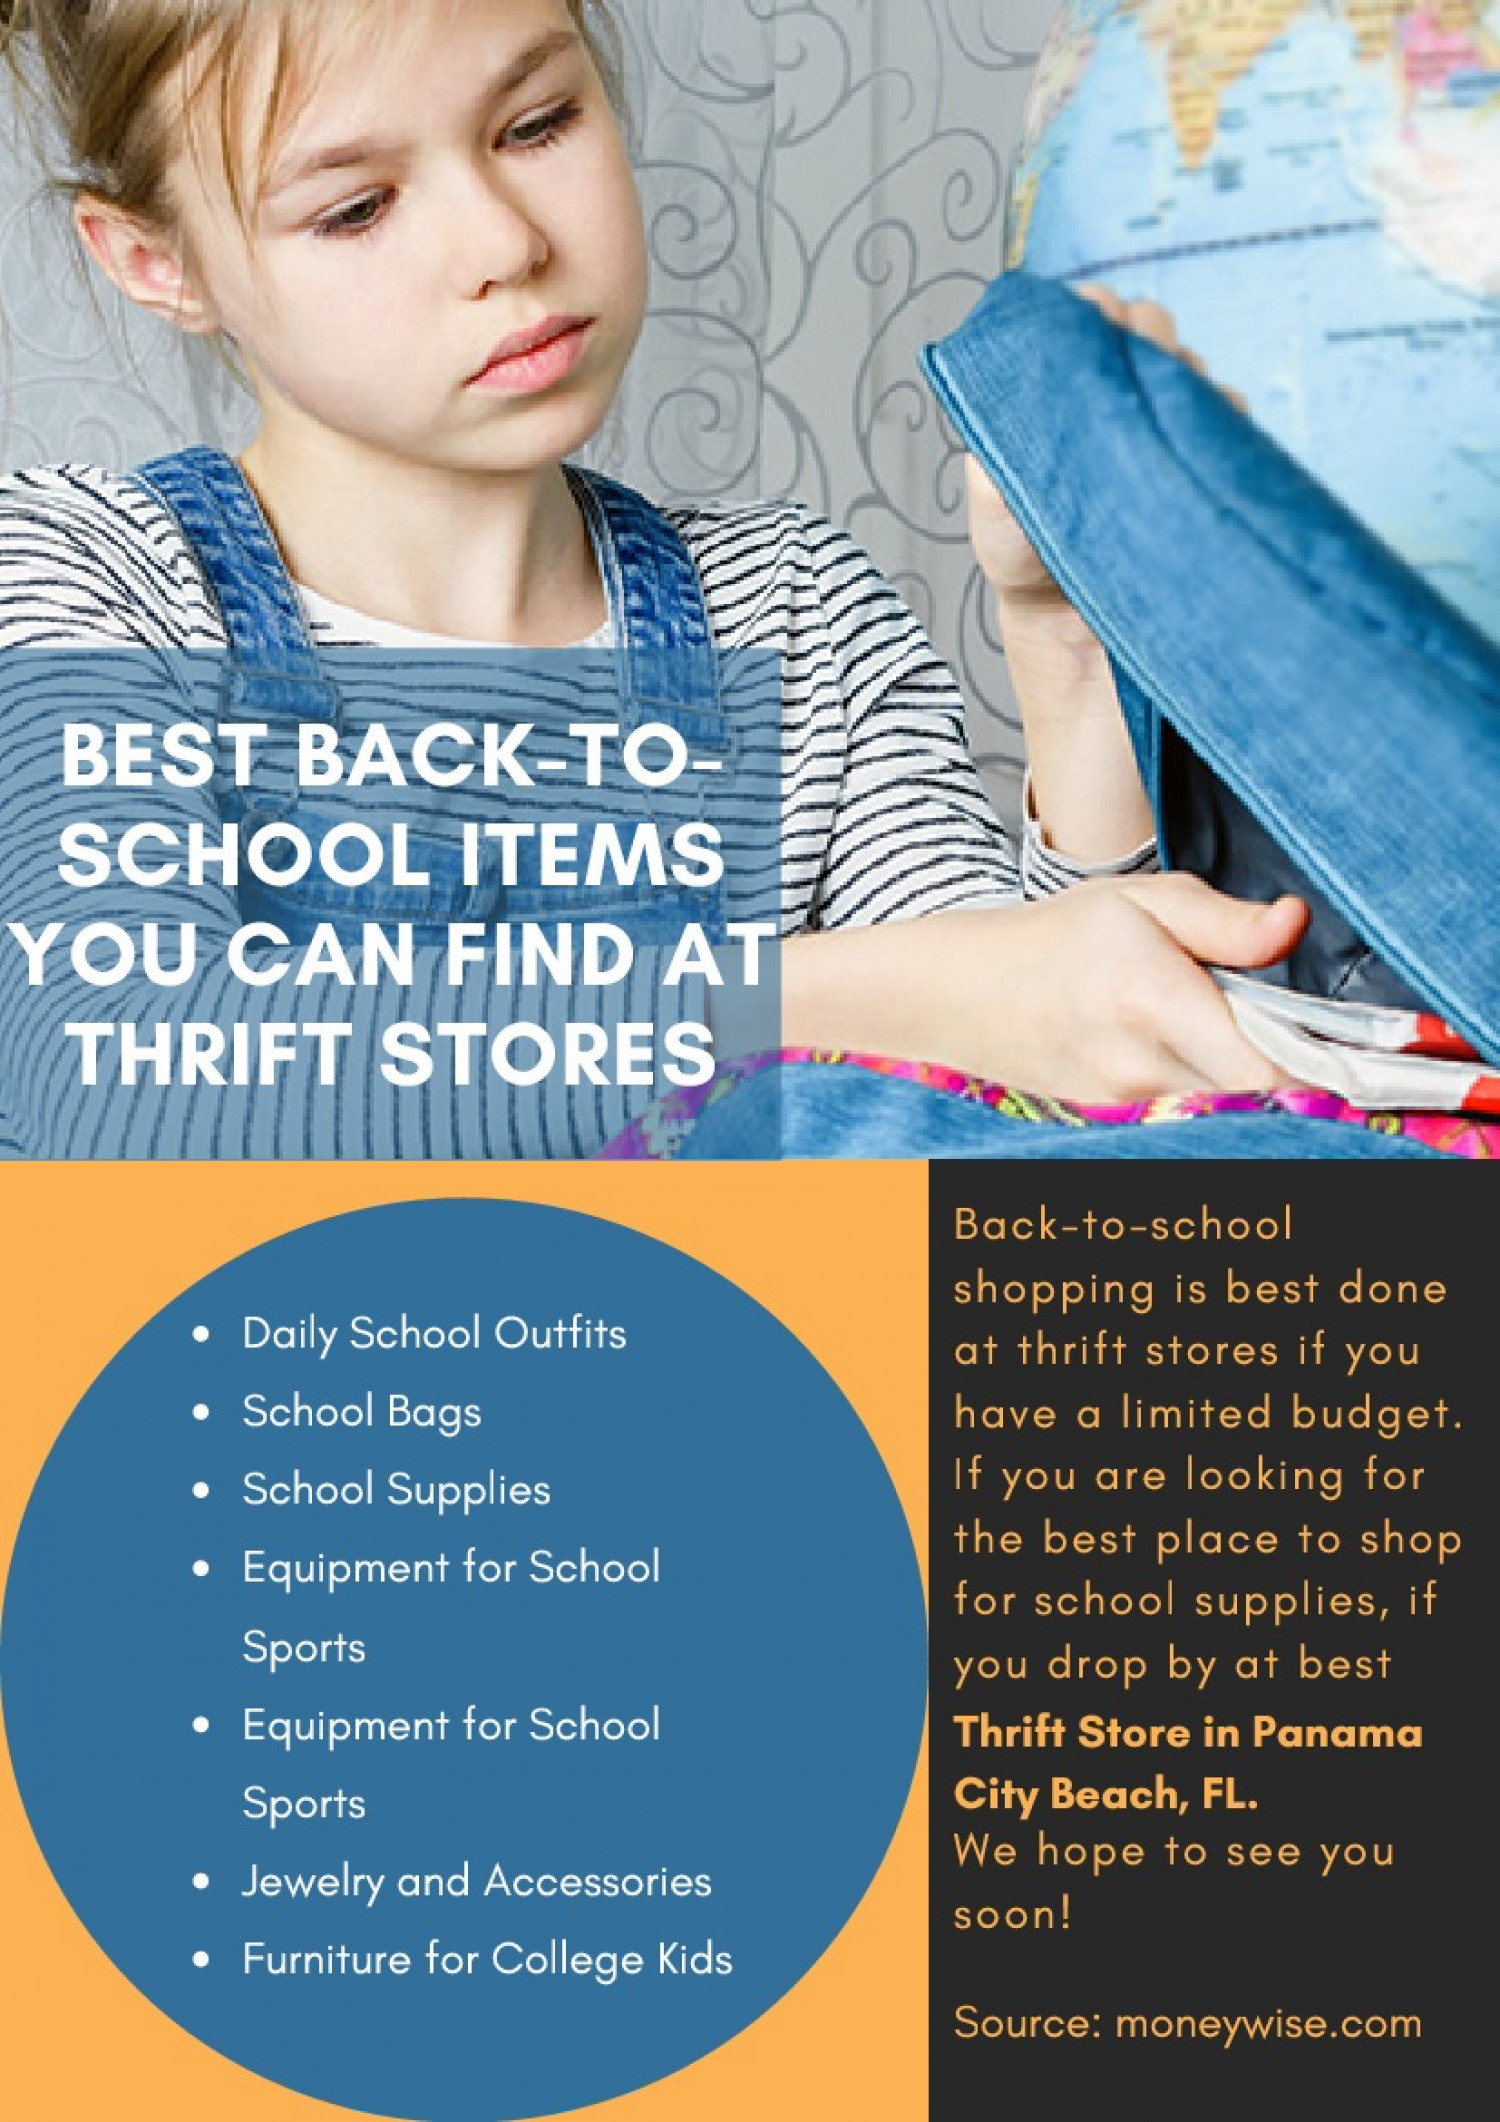 Best Back-To-School Items You Can Find at Thrift Stores Infographic